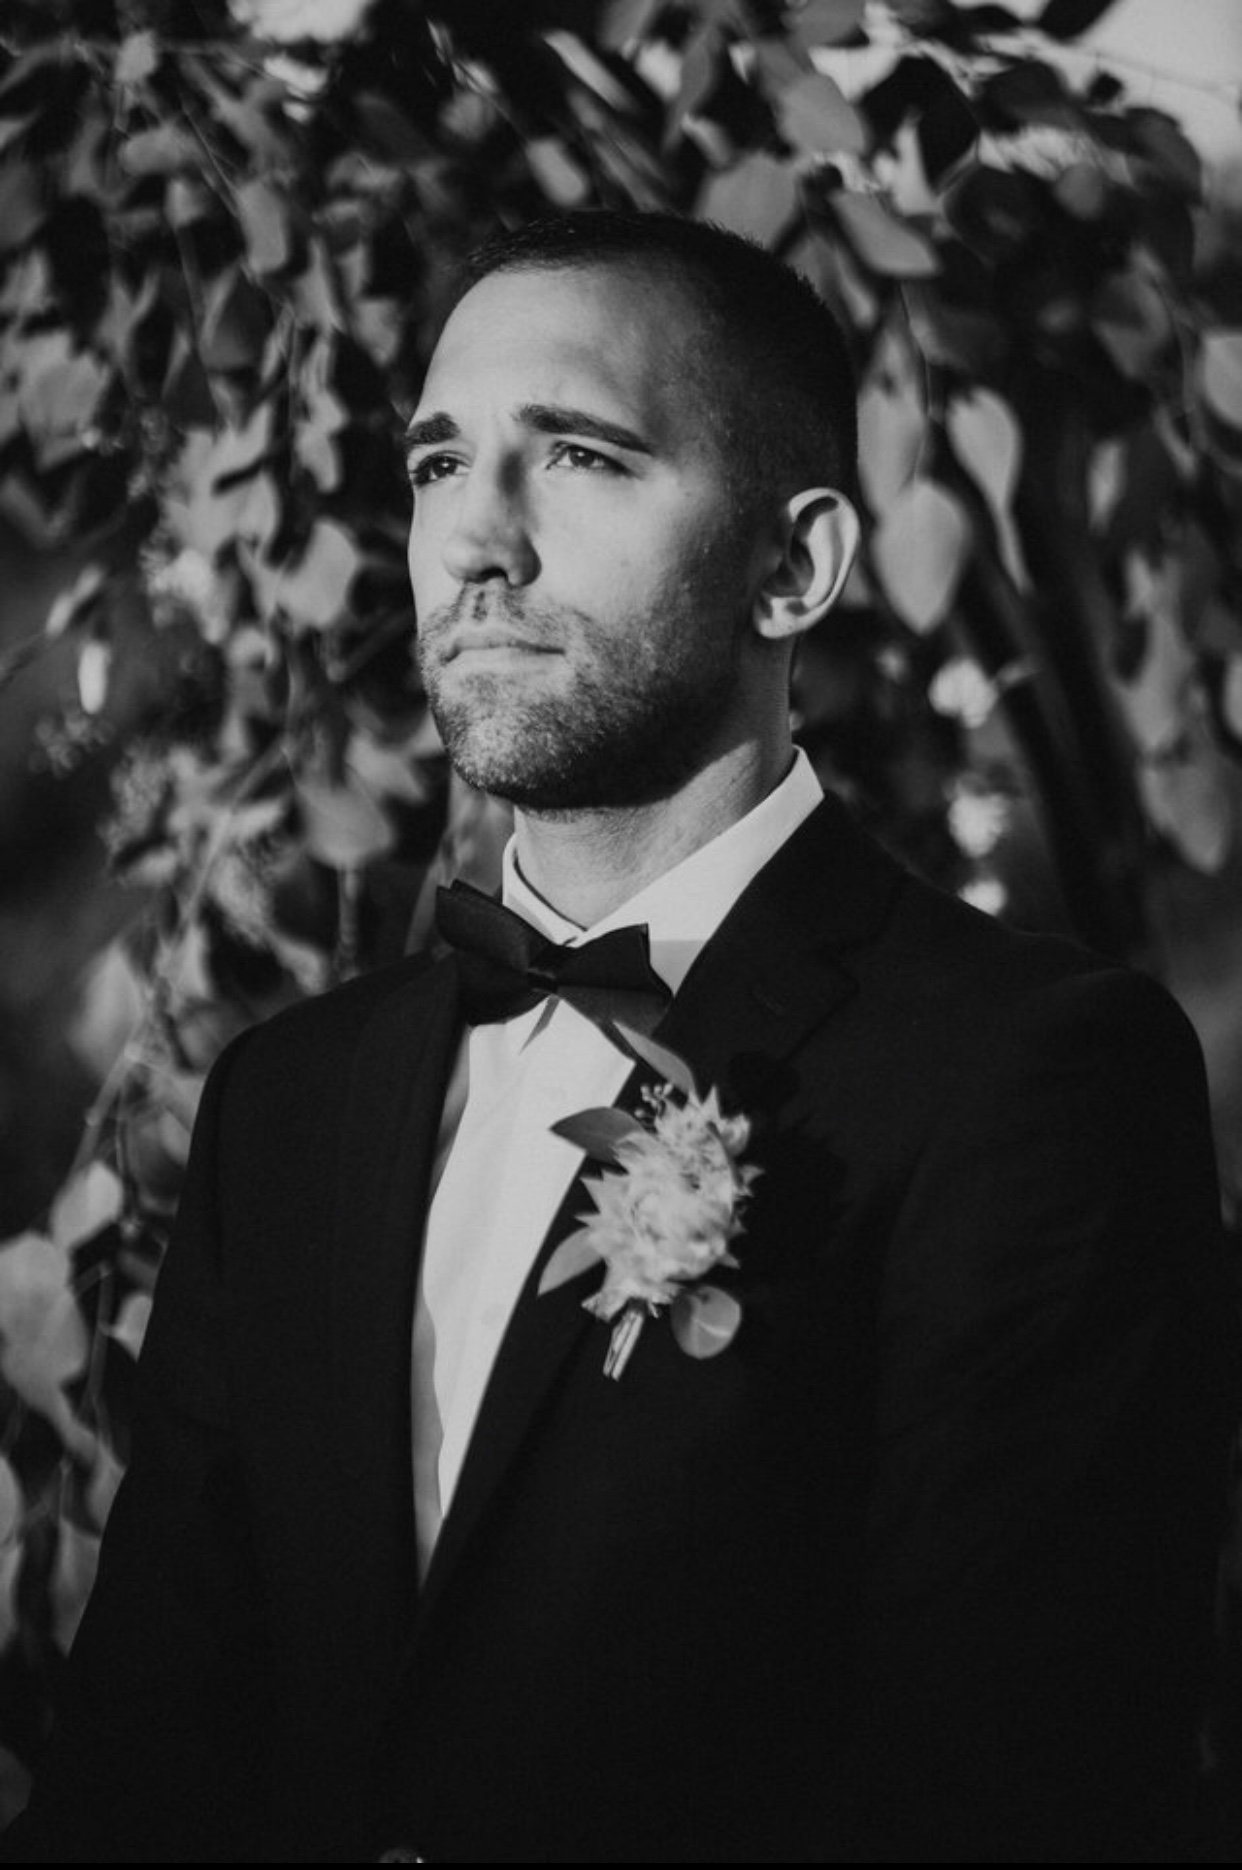 The Bridegroom waiting for his Bride.